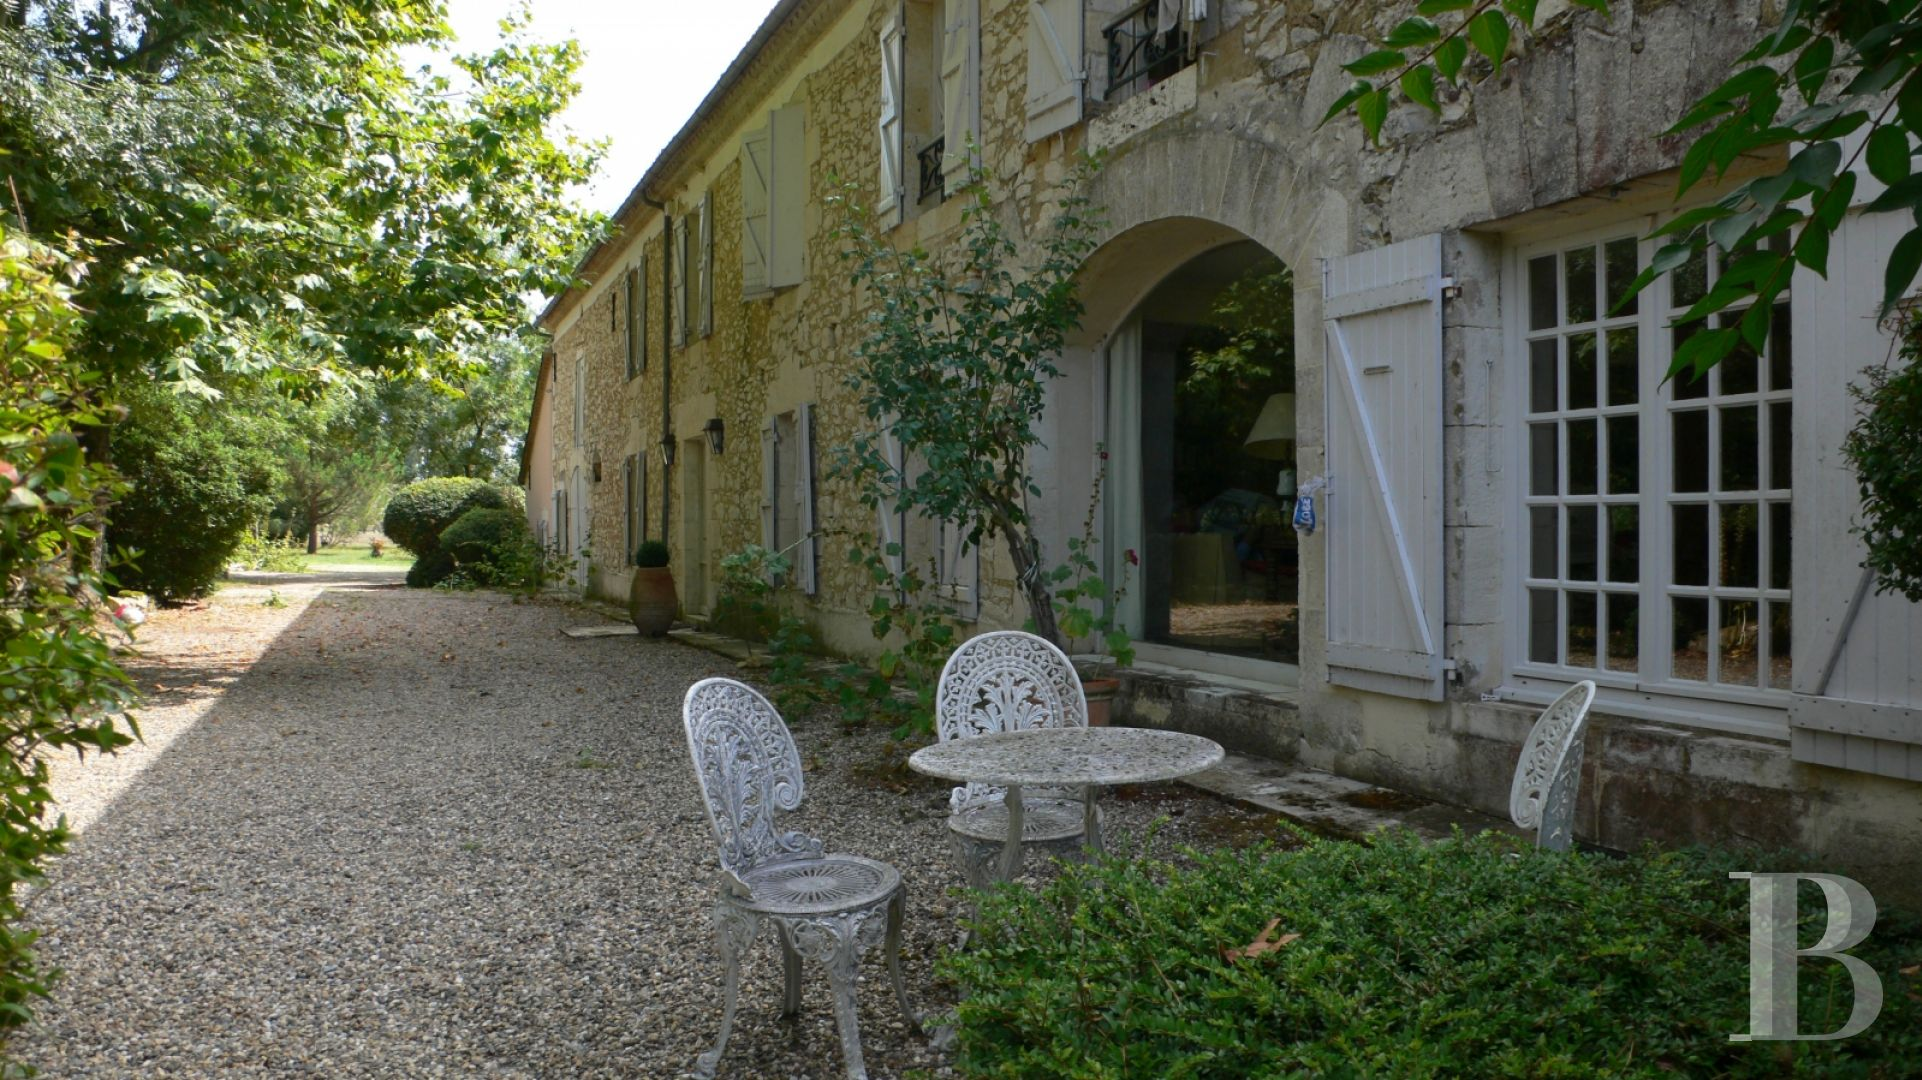 property for sale France midi pyrenees residences farms - 1 zoom